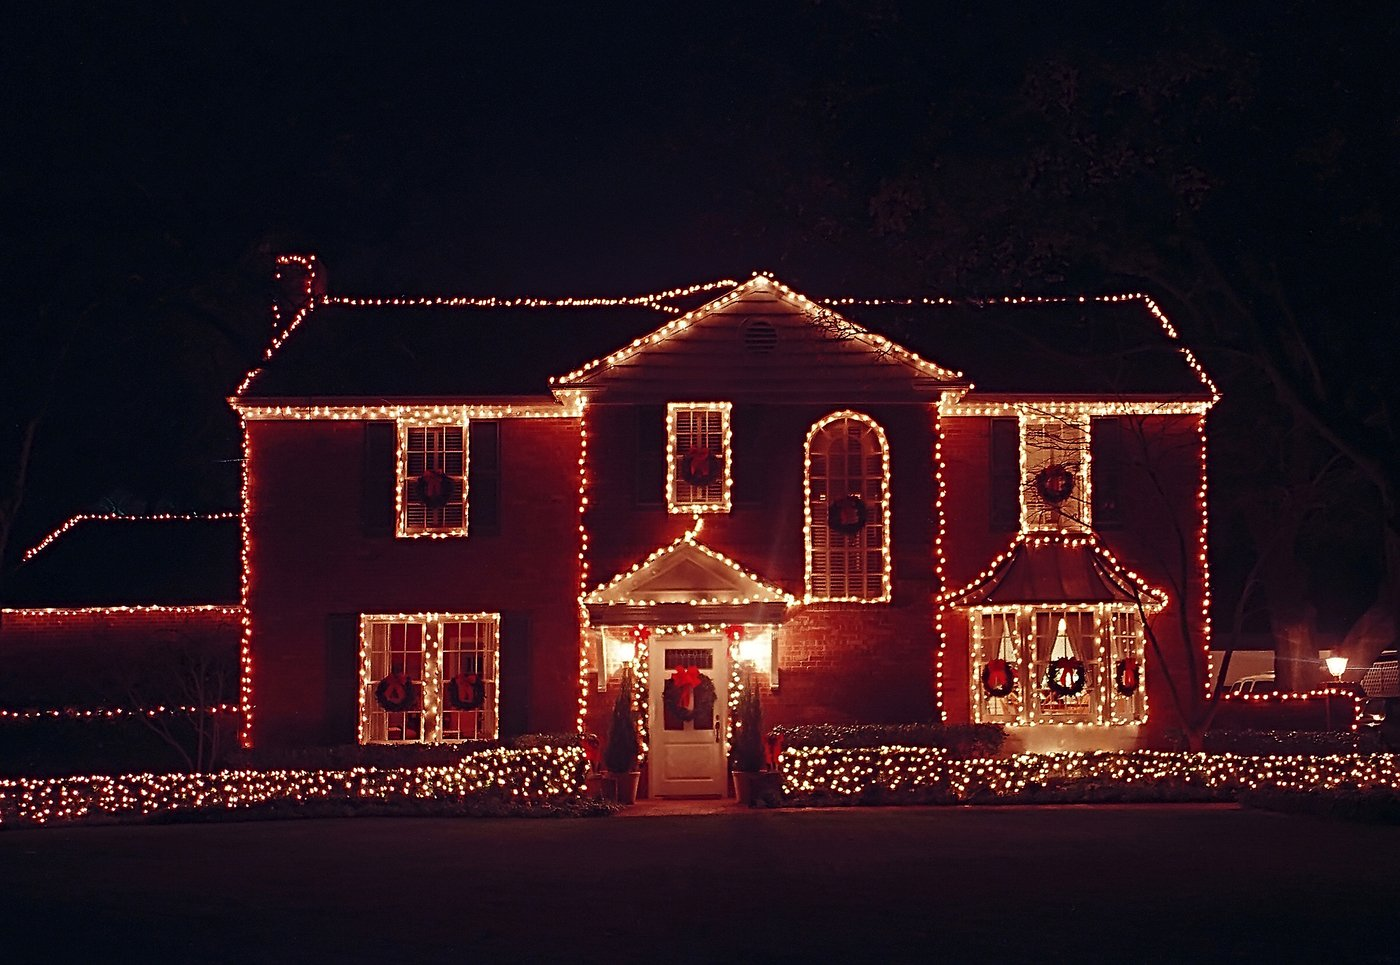 House Decorated with Christmas Lighting